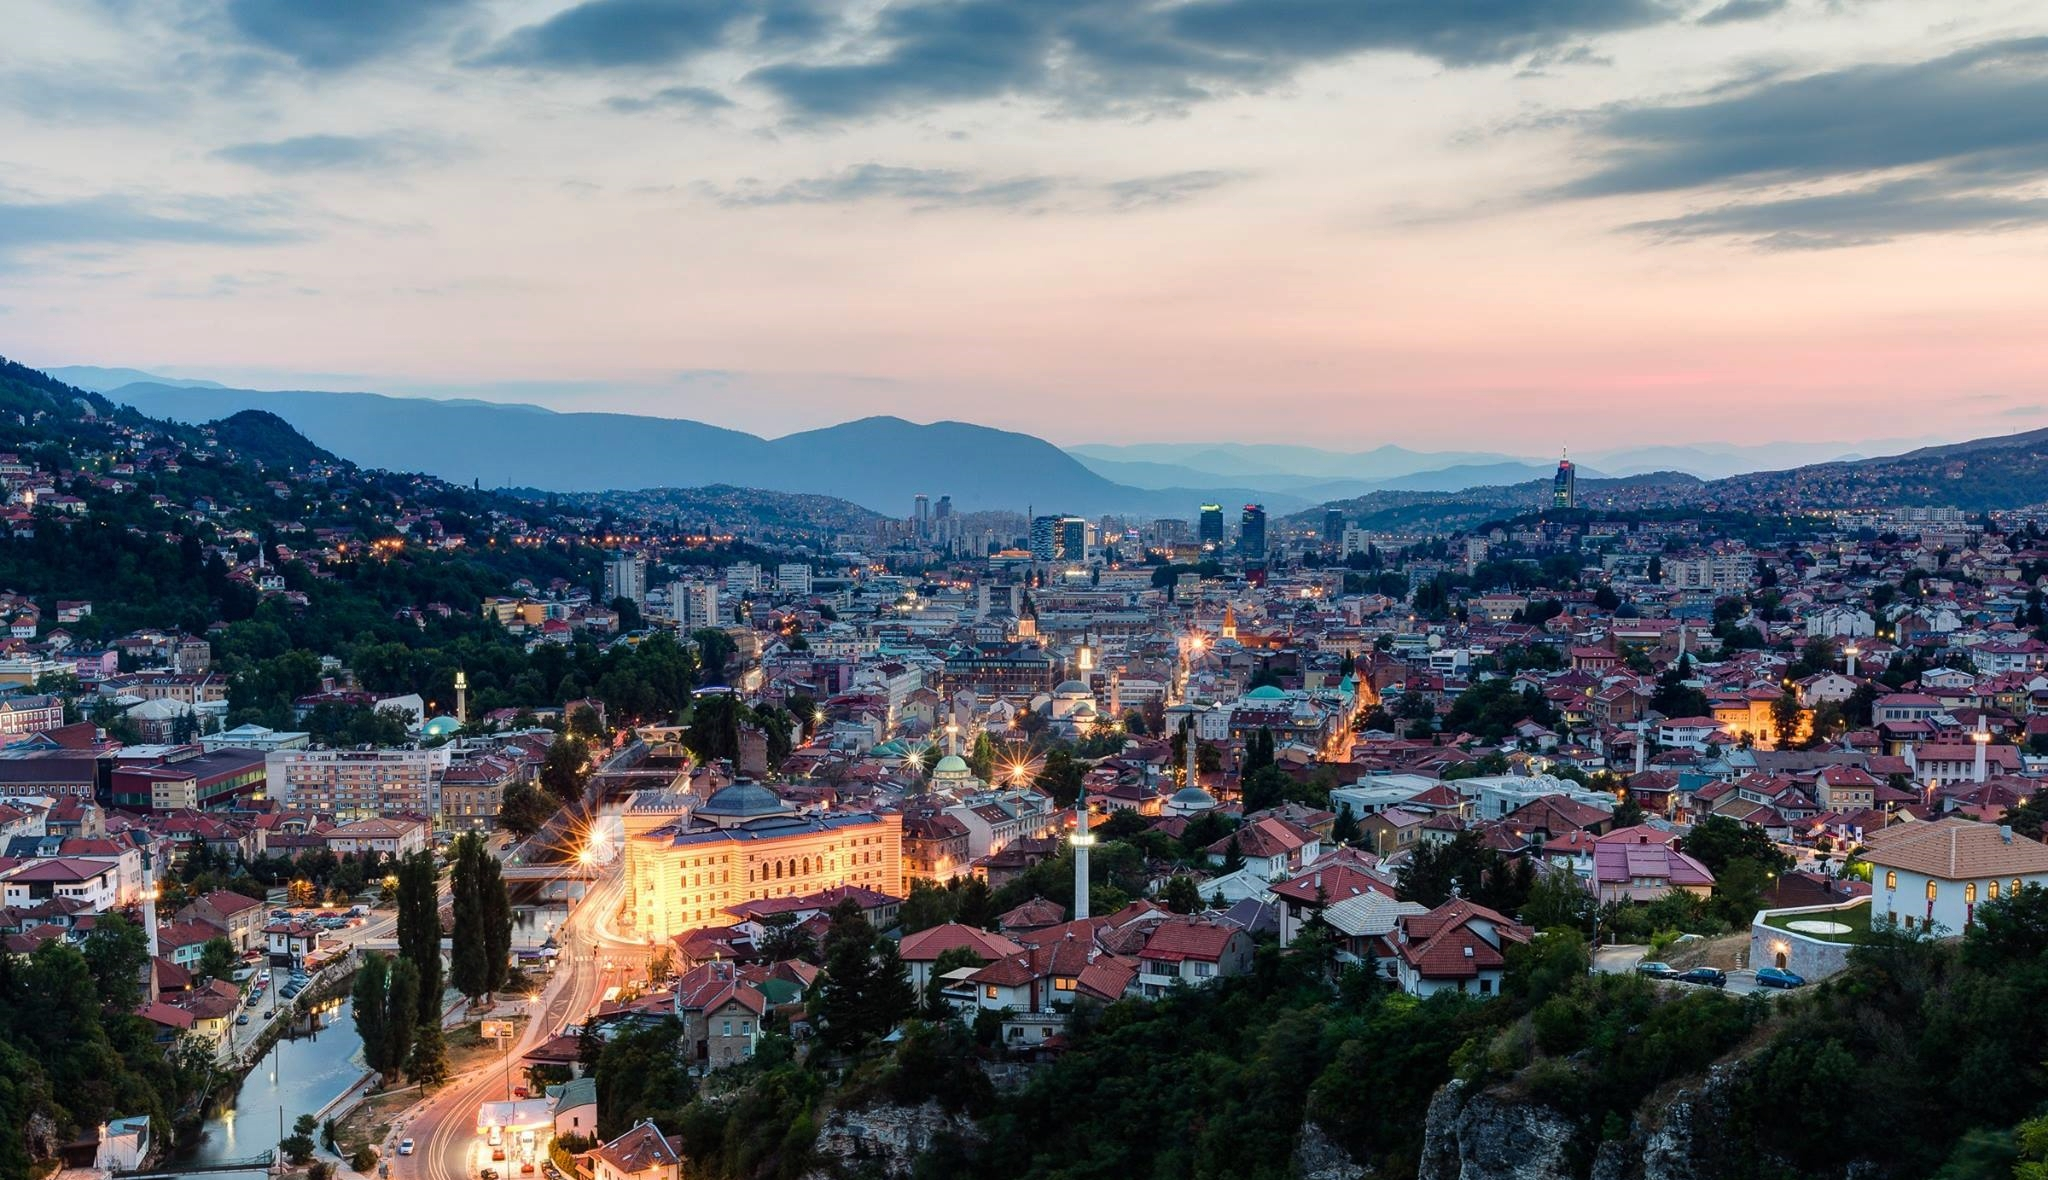 All seasons 4 days Bosnia discovery tour from Split. Visit old towns and monasteries, waterfall and fortresses.